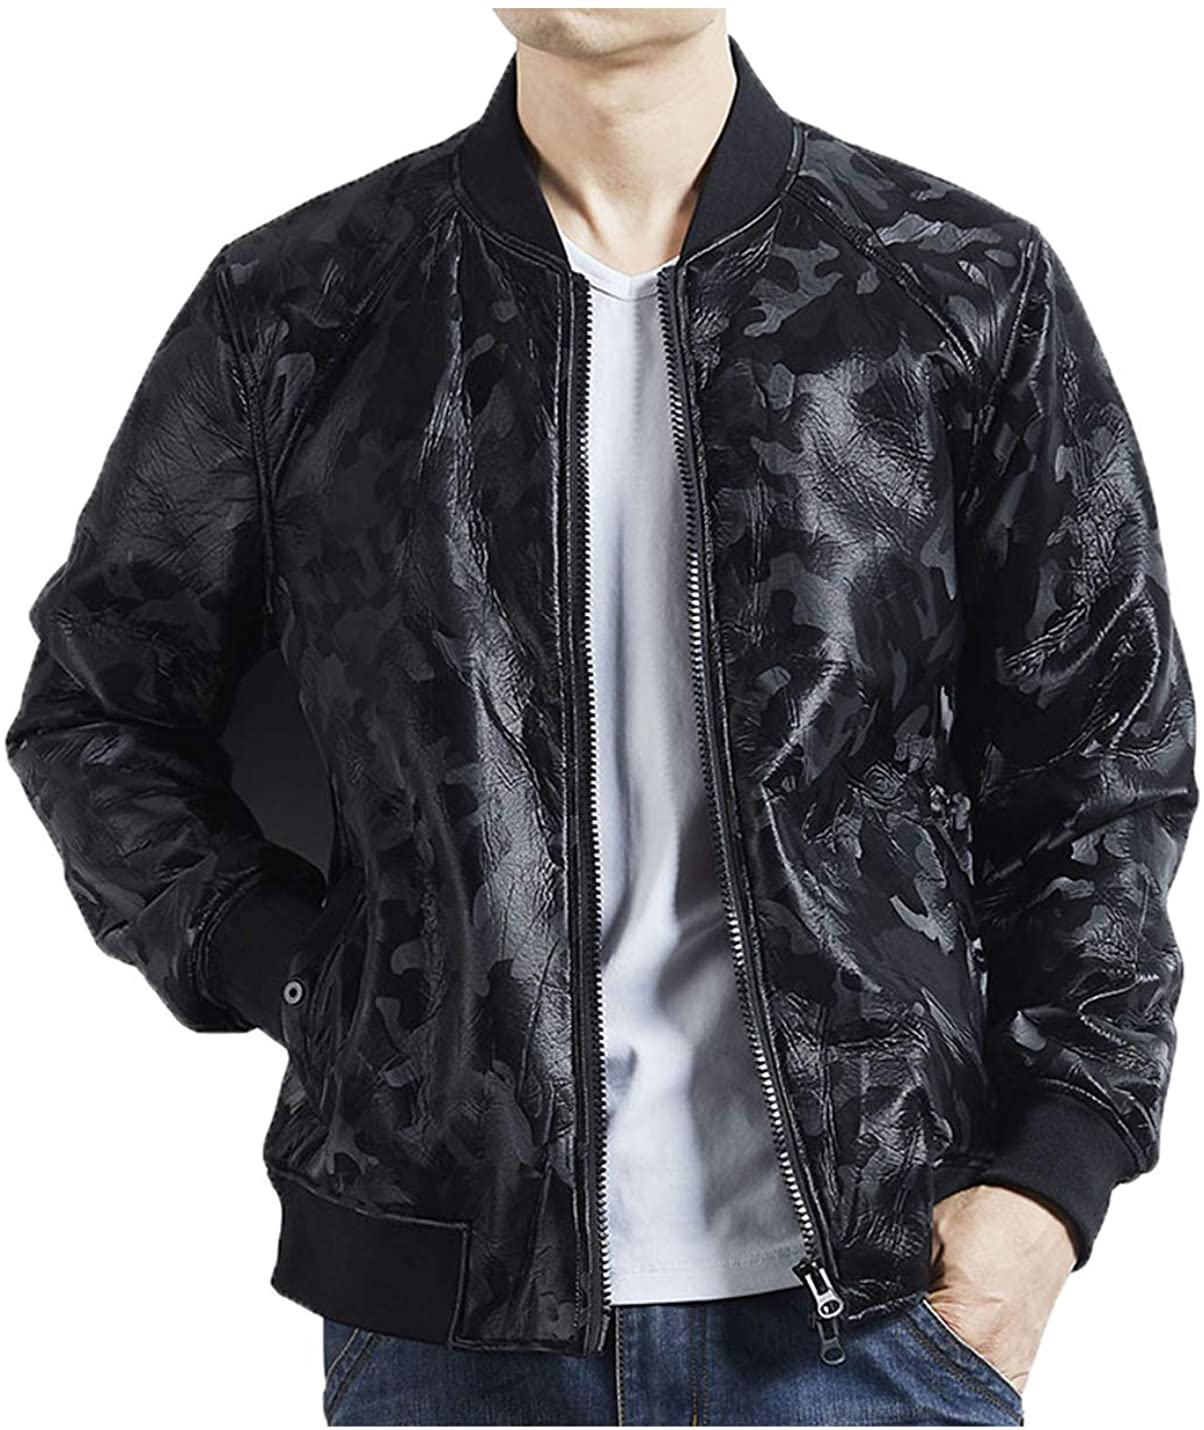 PAODIKUAI Men's Olive Camo Print Black Faux Leather Bomber Jacket Sports Zip Jacket